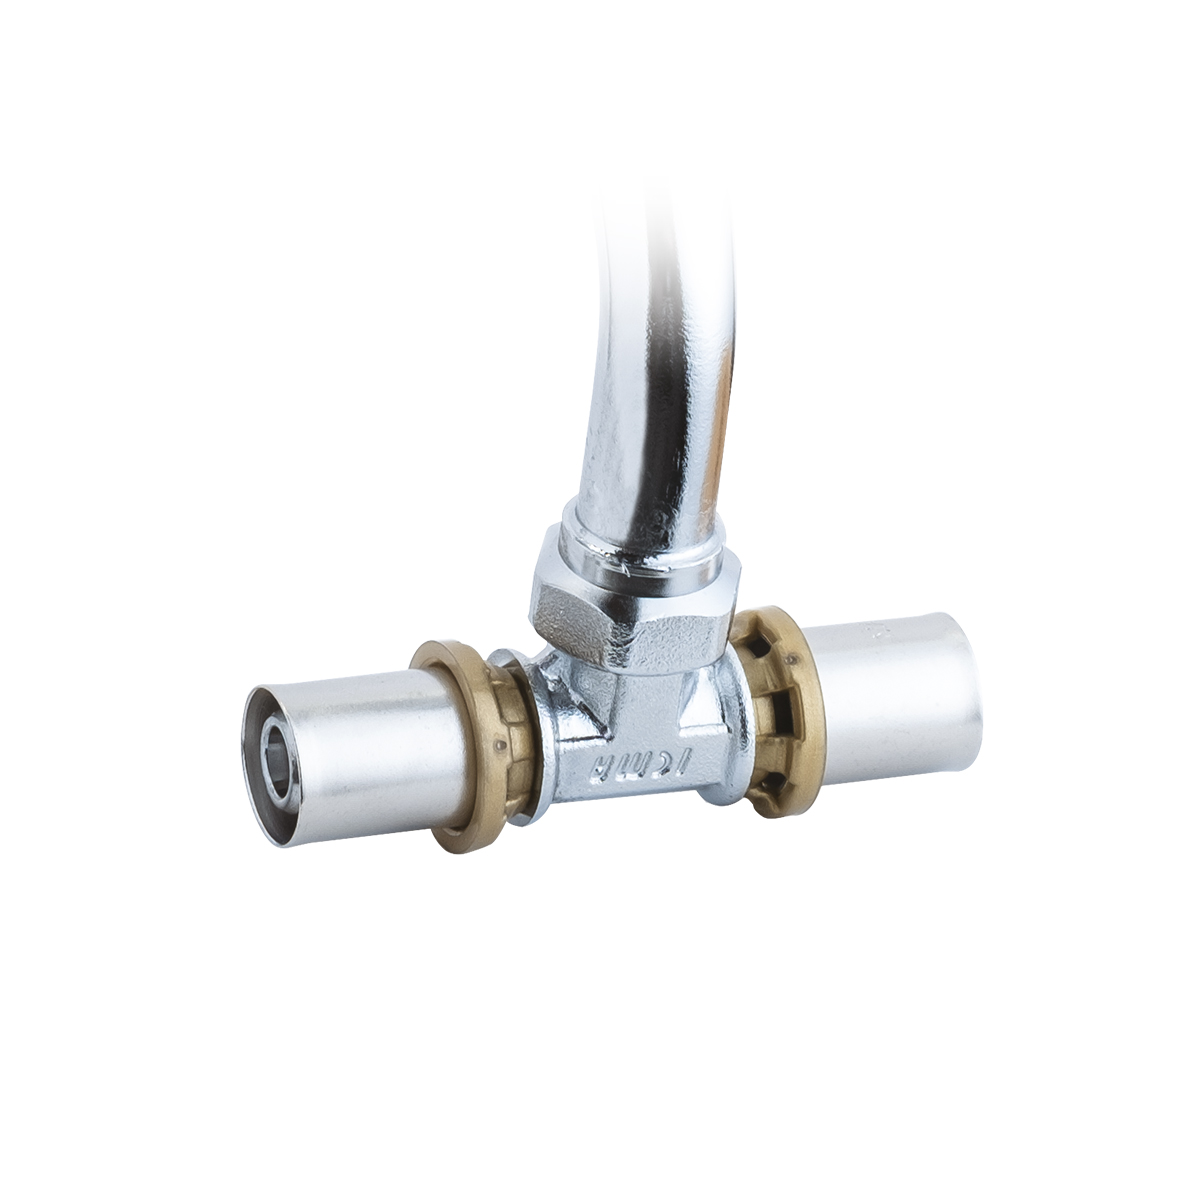 SEMPITER chrome-plated TEE fittings for radiator connection.